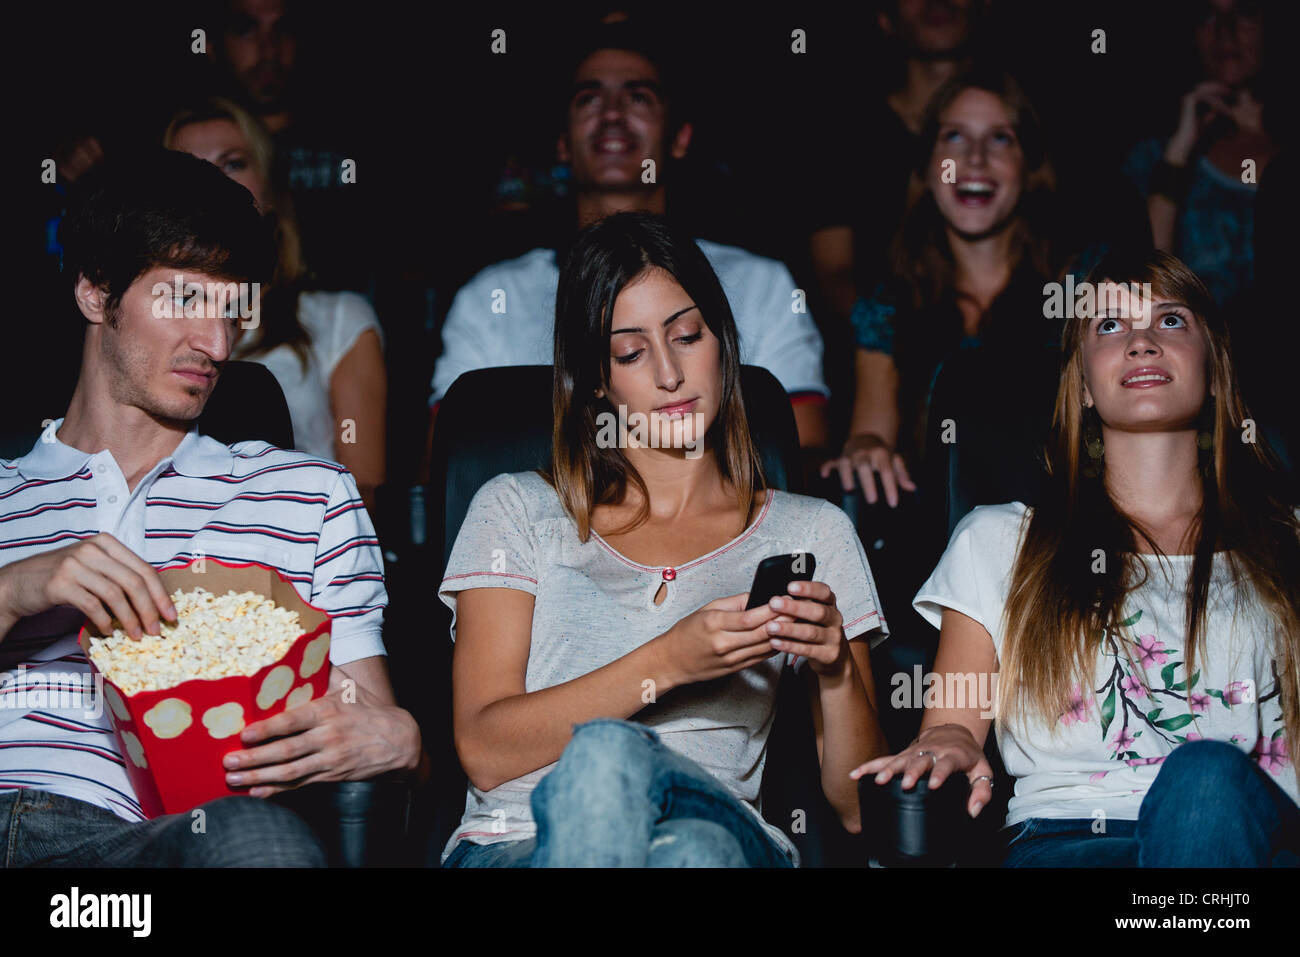 Woman using cell phone in movie theater, man looking over with annoyed expression - Stock Image